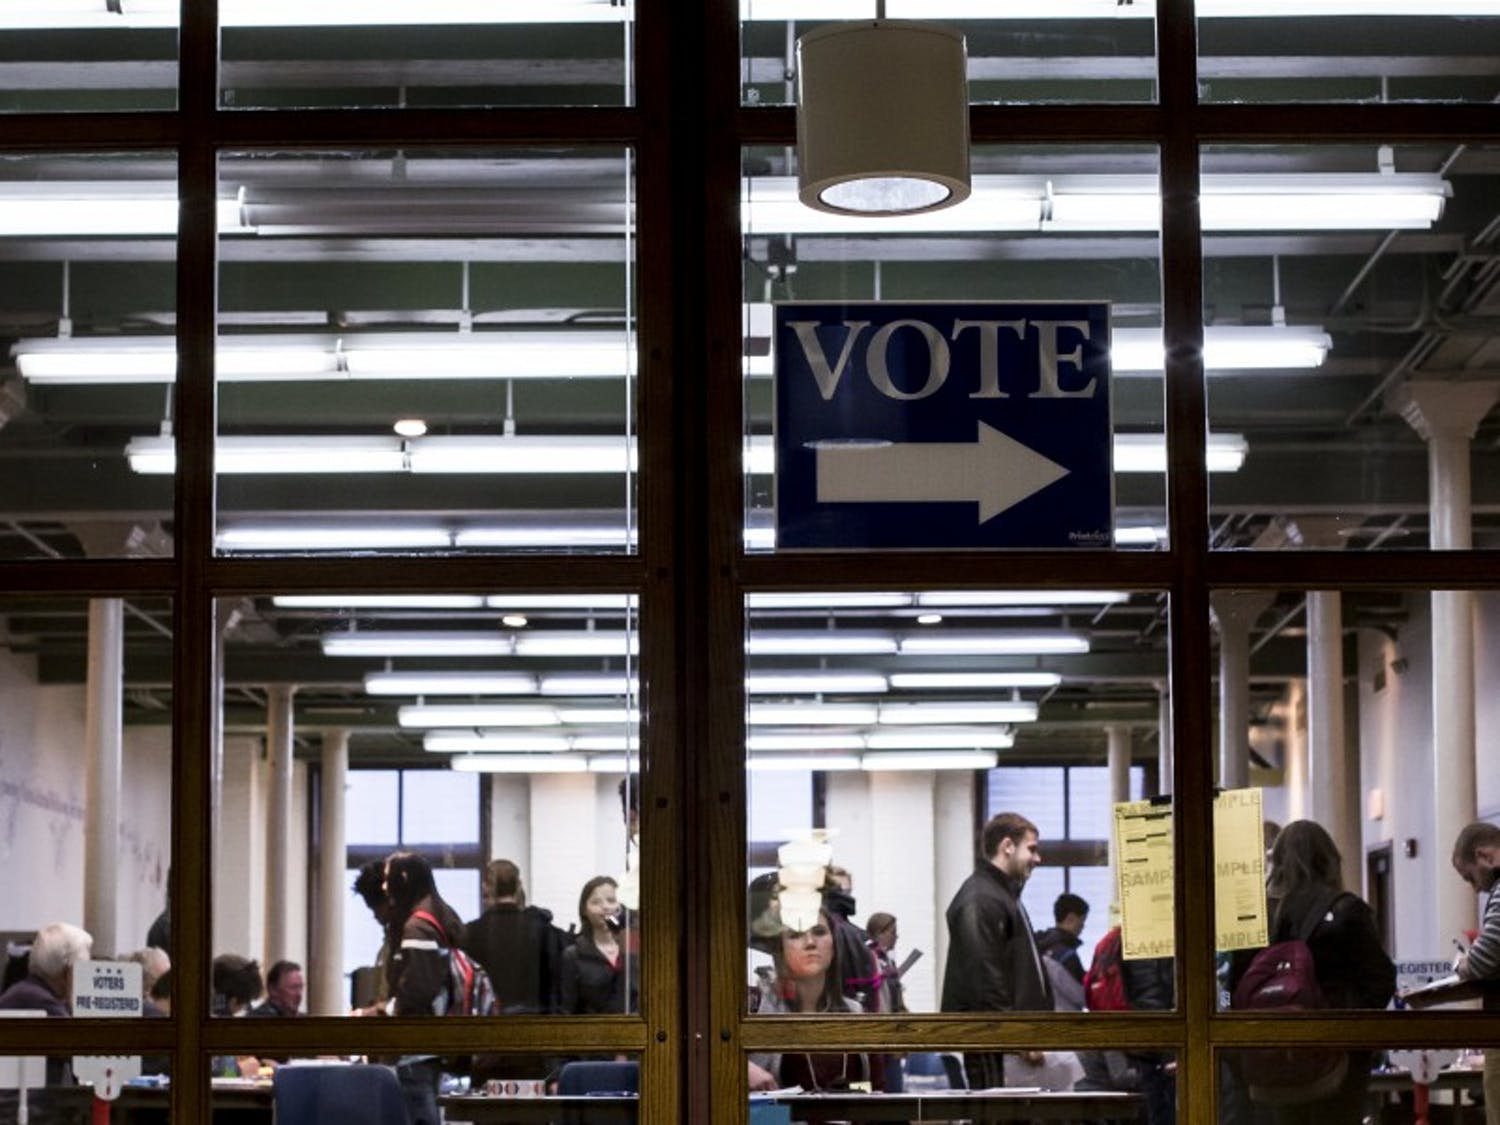 Wisconsin's April 5 primary was the first major statewide election to require a voter ID.